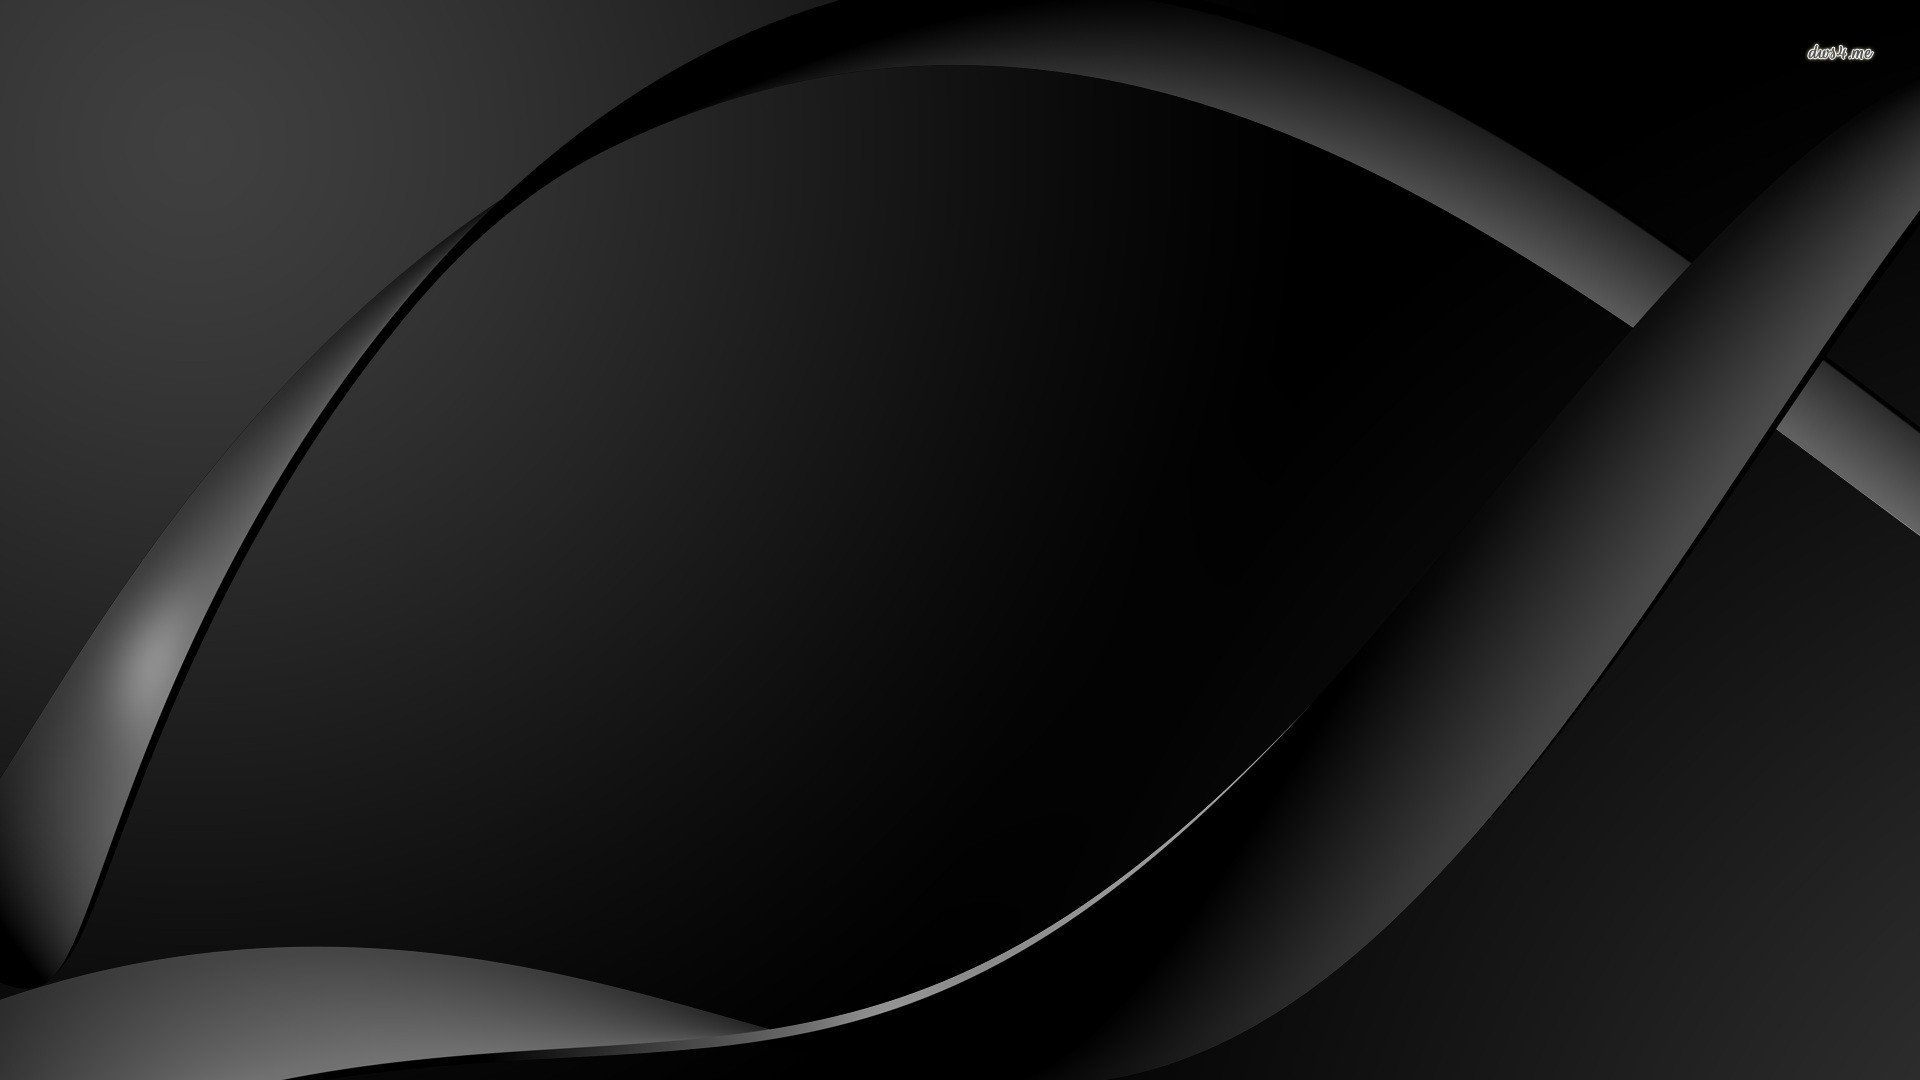 black abstract wallpaper HD 1920x1080